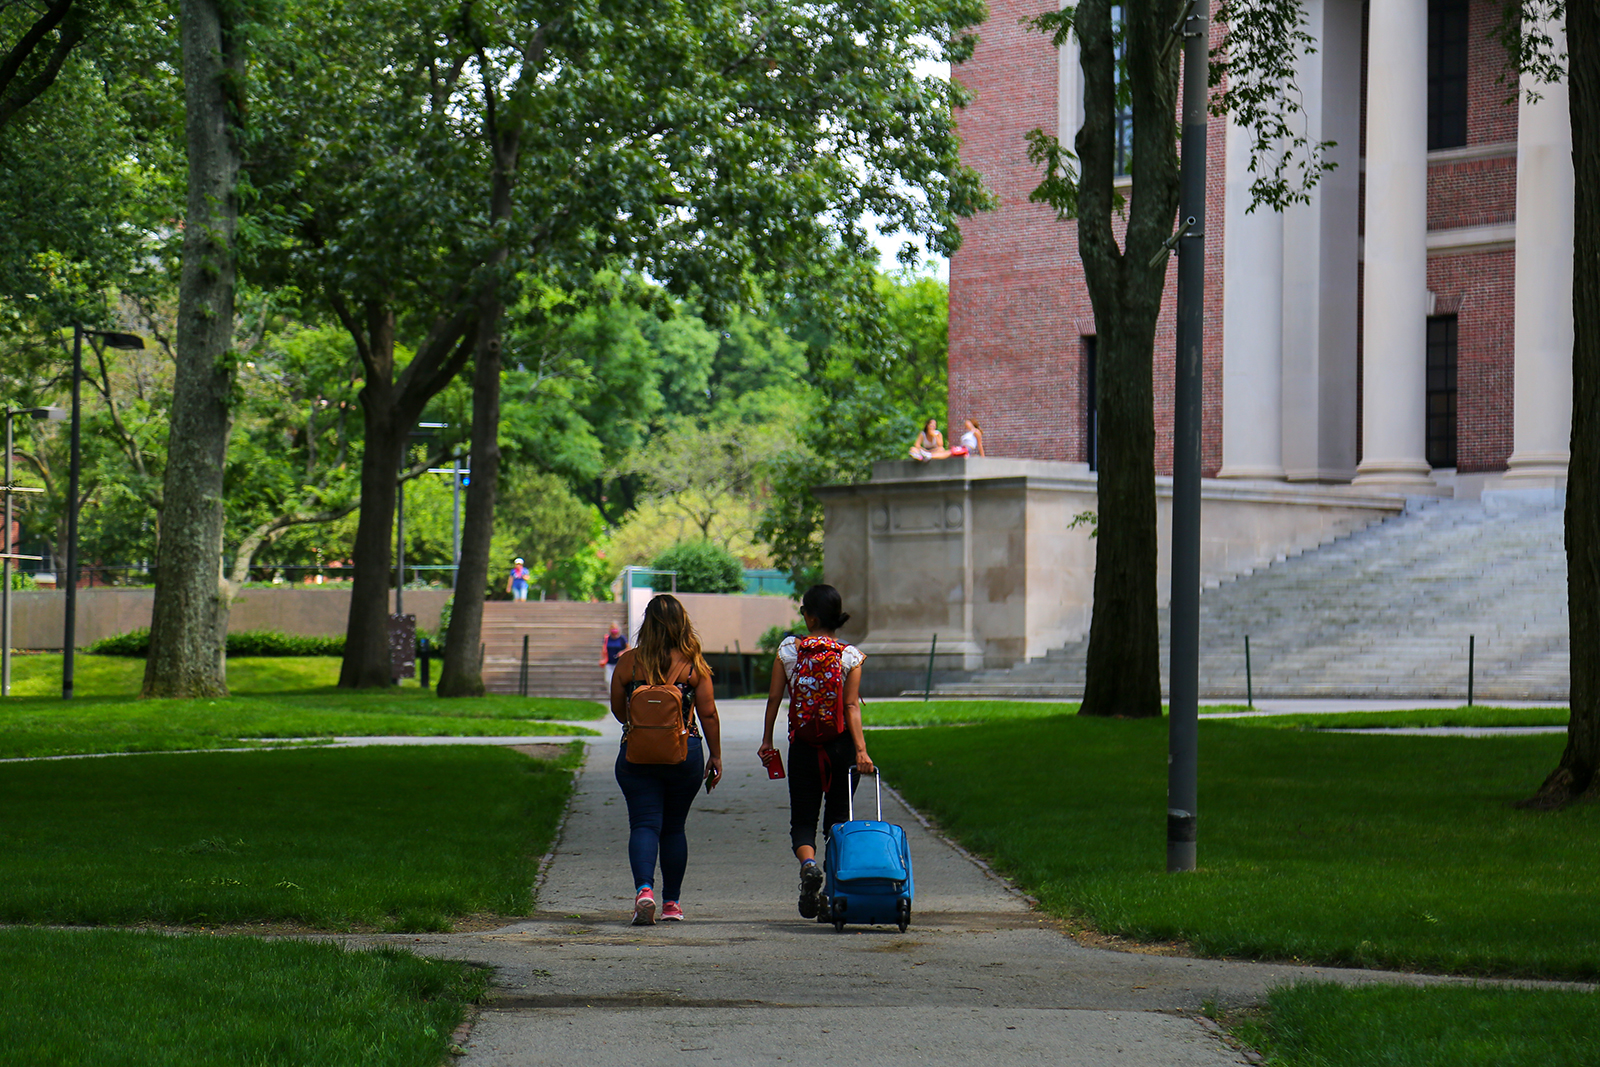 Two students are seen leaving their campus with baggage at Harvard University premises in Cambridge, Massachusetts on July 08.